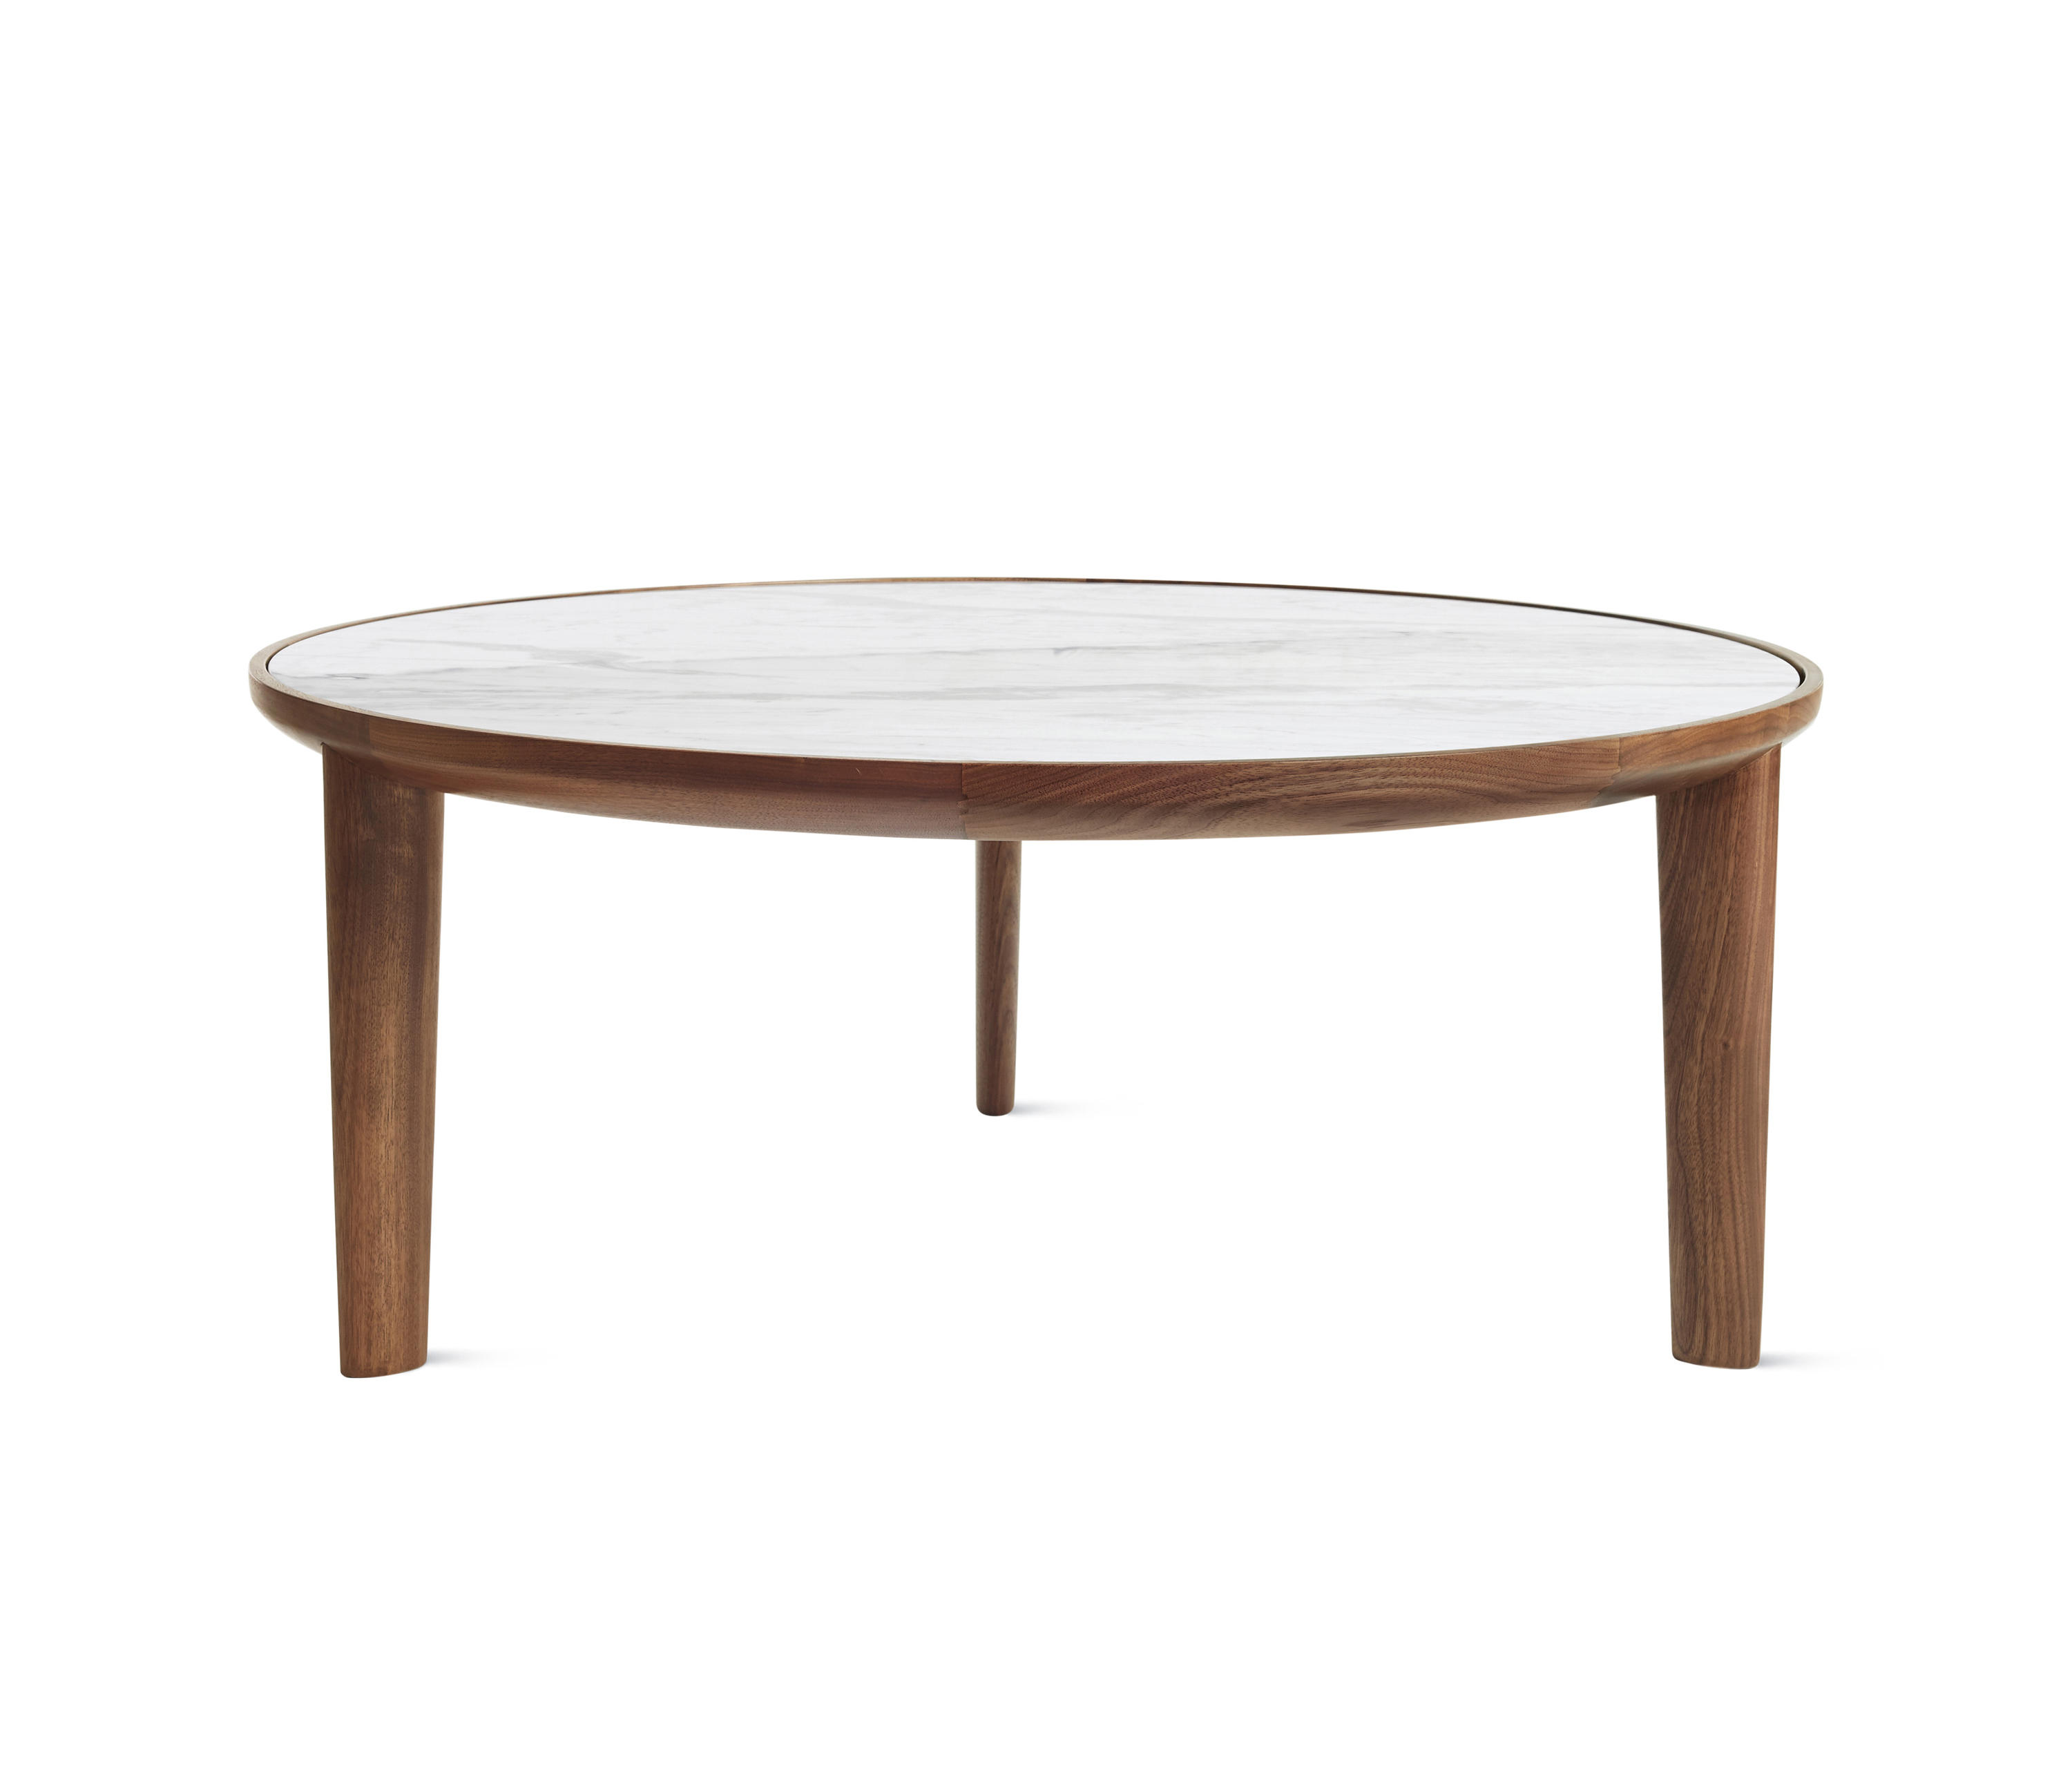 design within reach outdoor furniture. Port Coffee Table By Design Within Reach | Tables Outdoor Furniture I